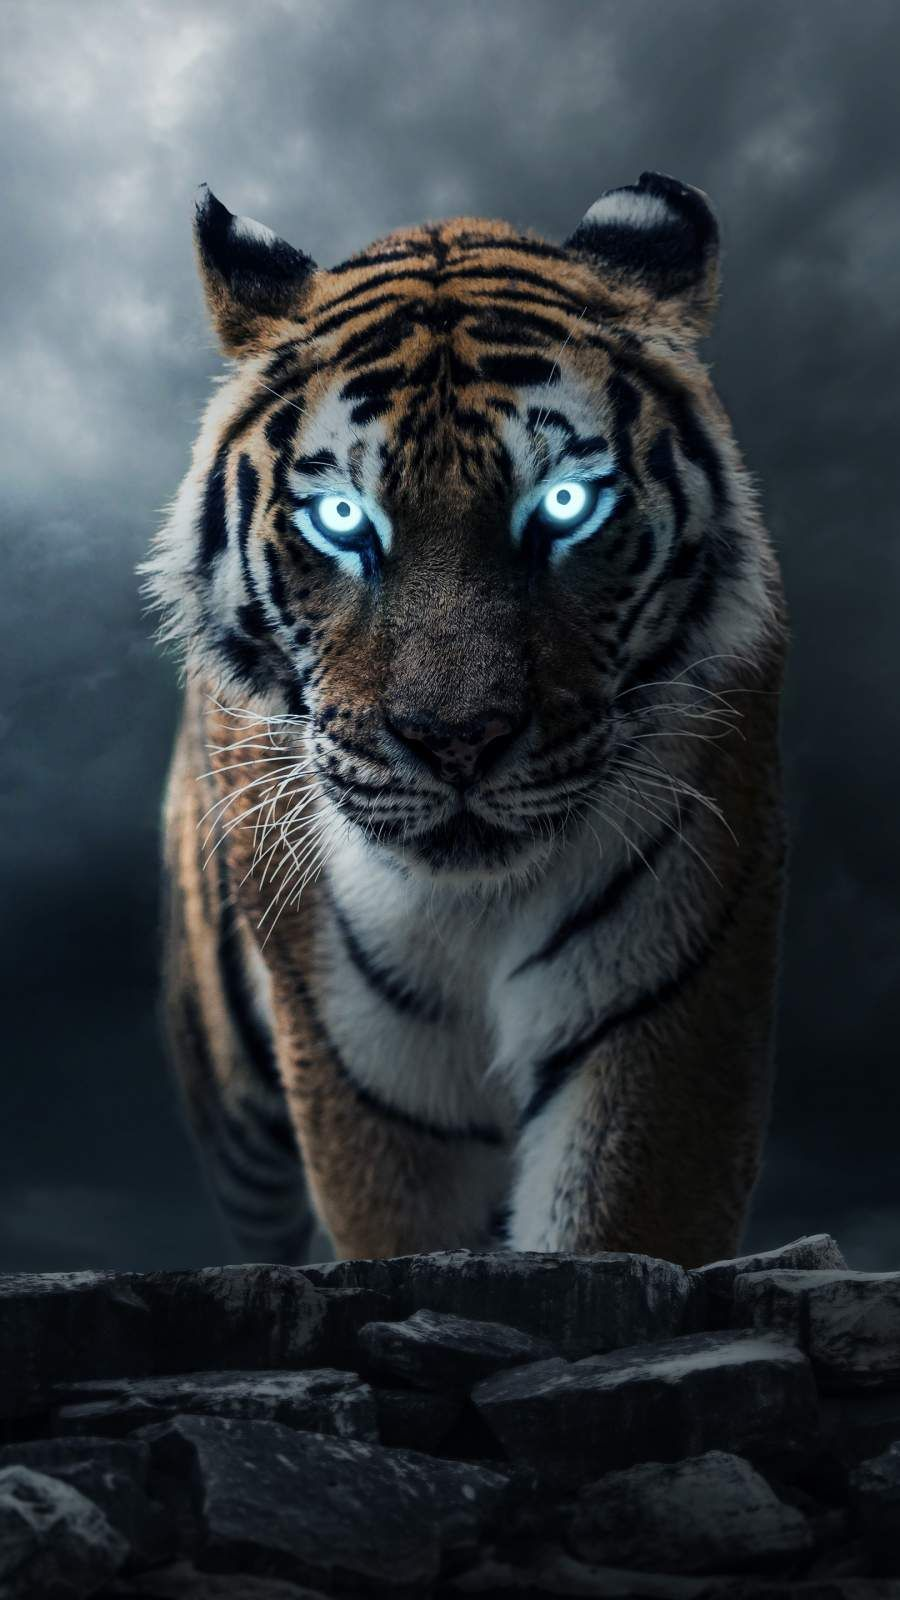 Iphone Wallpapers For Iphone 8 Iphone 8 Plus Iphone 6s Iphone 6s Plus Iphone X And Ipod Touc Iphone Wallpaper Images Wild Animal Wallpaper Animal Wallpaper